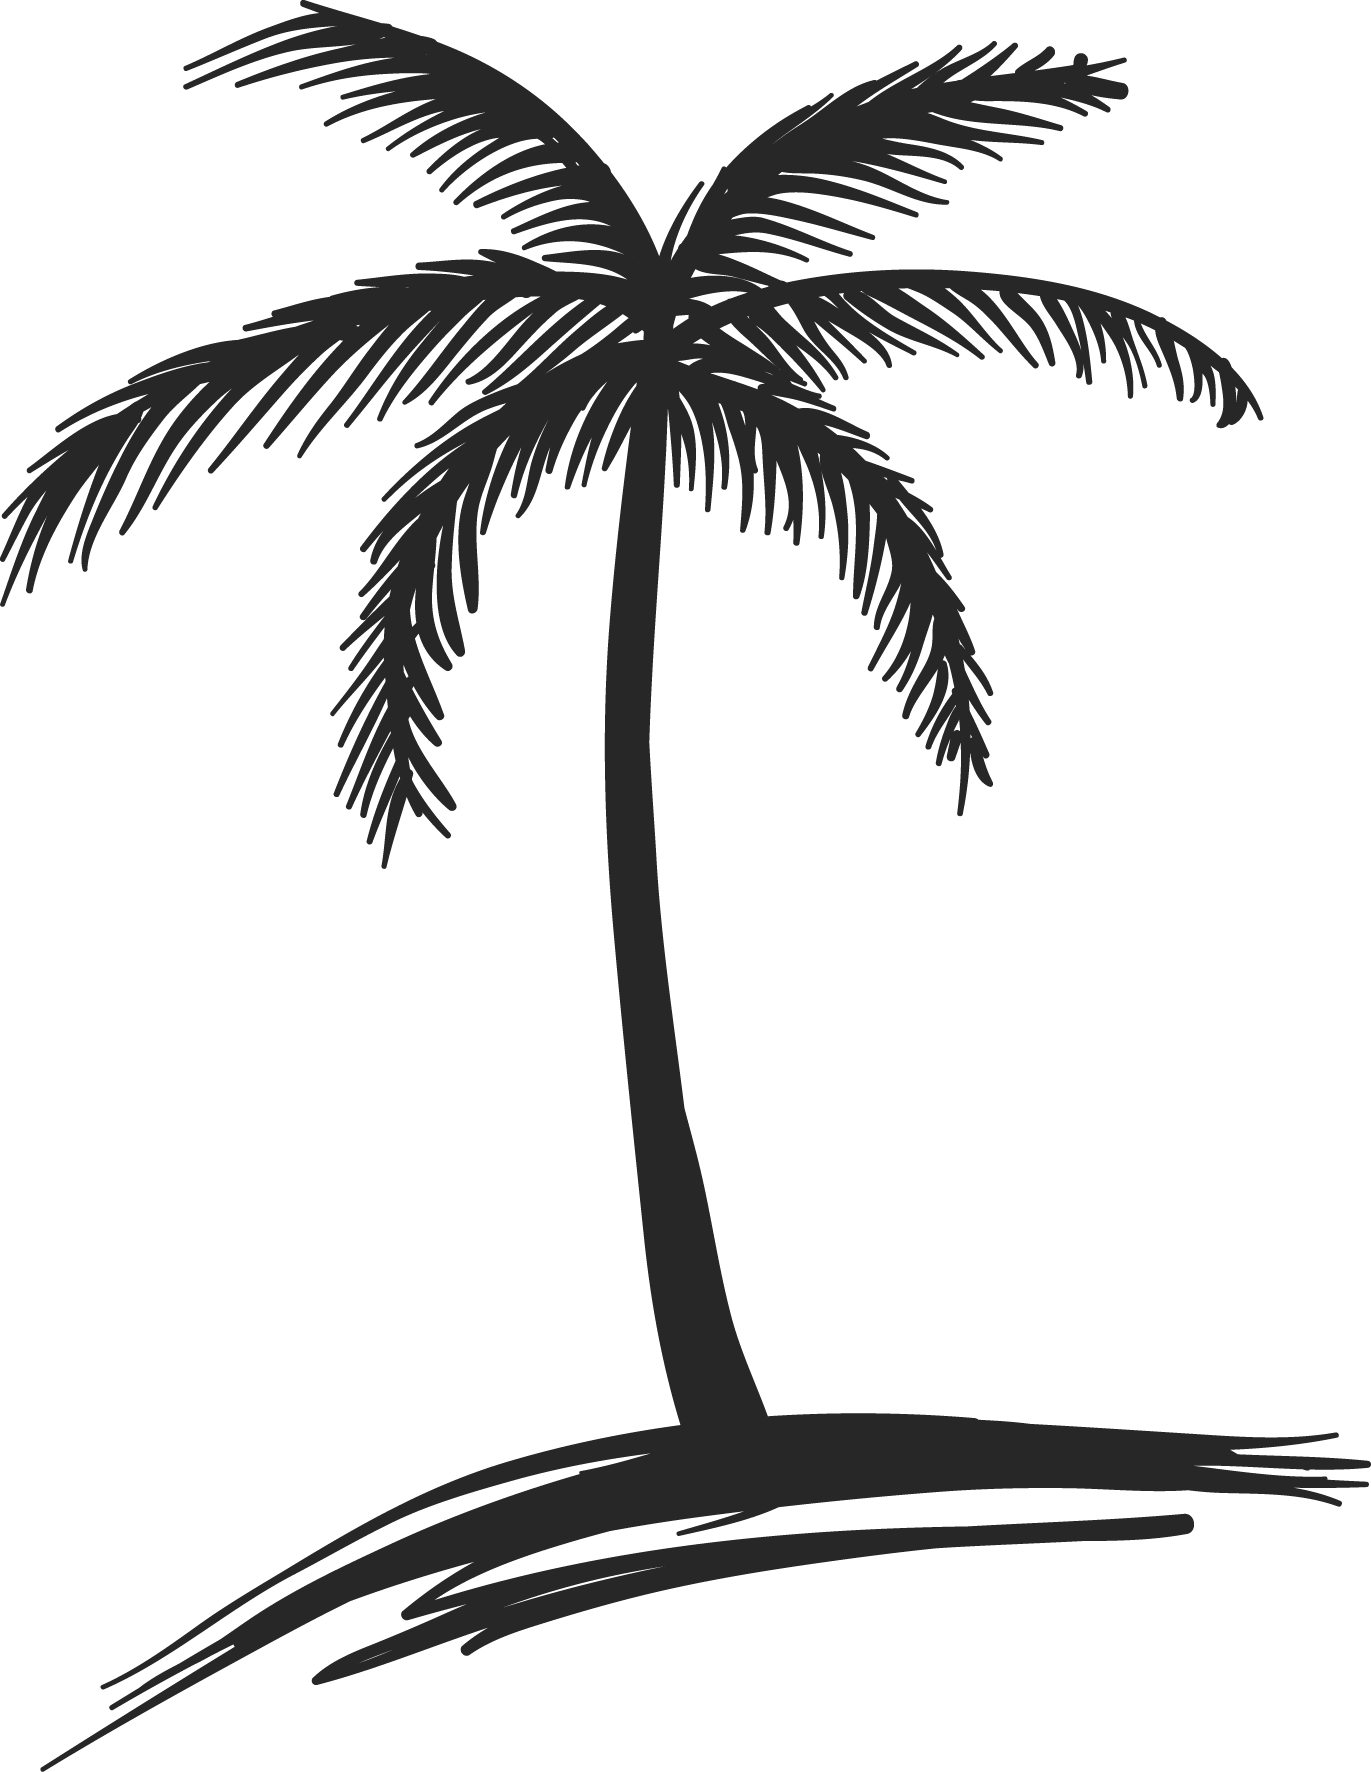 hight resolution of palm trees drawings